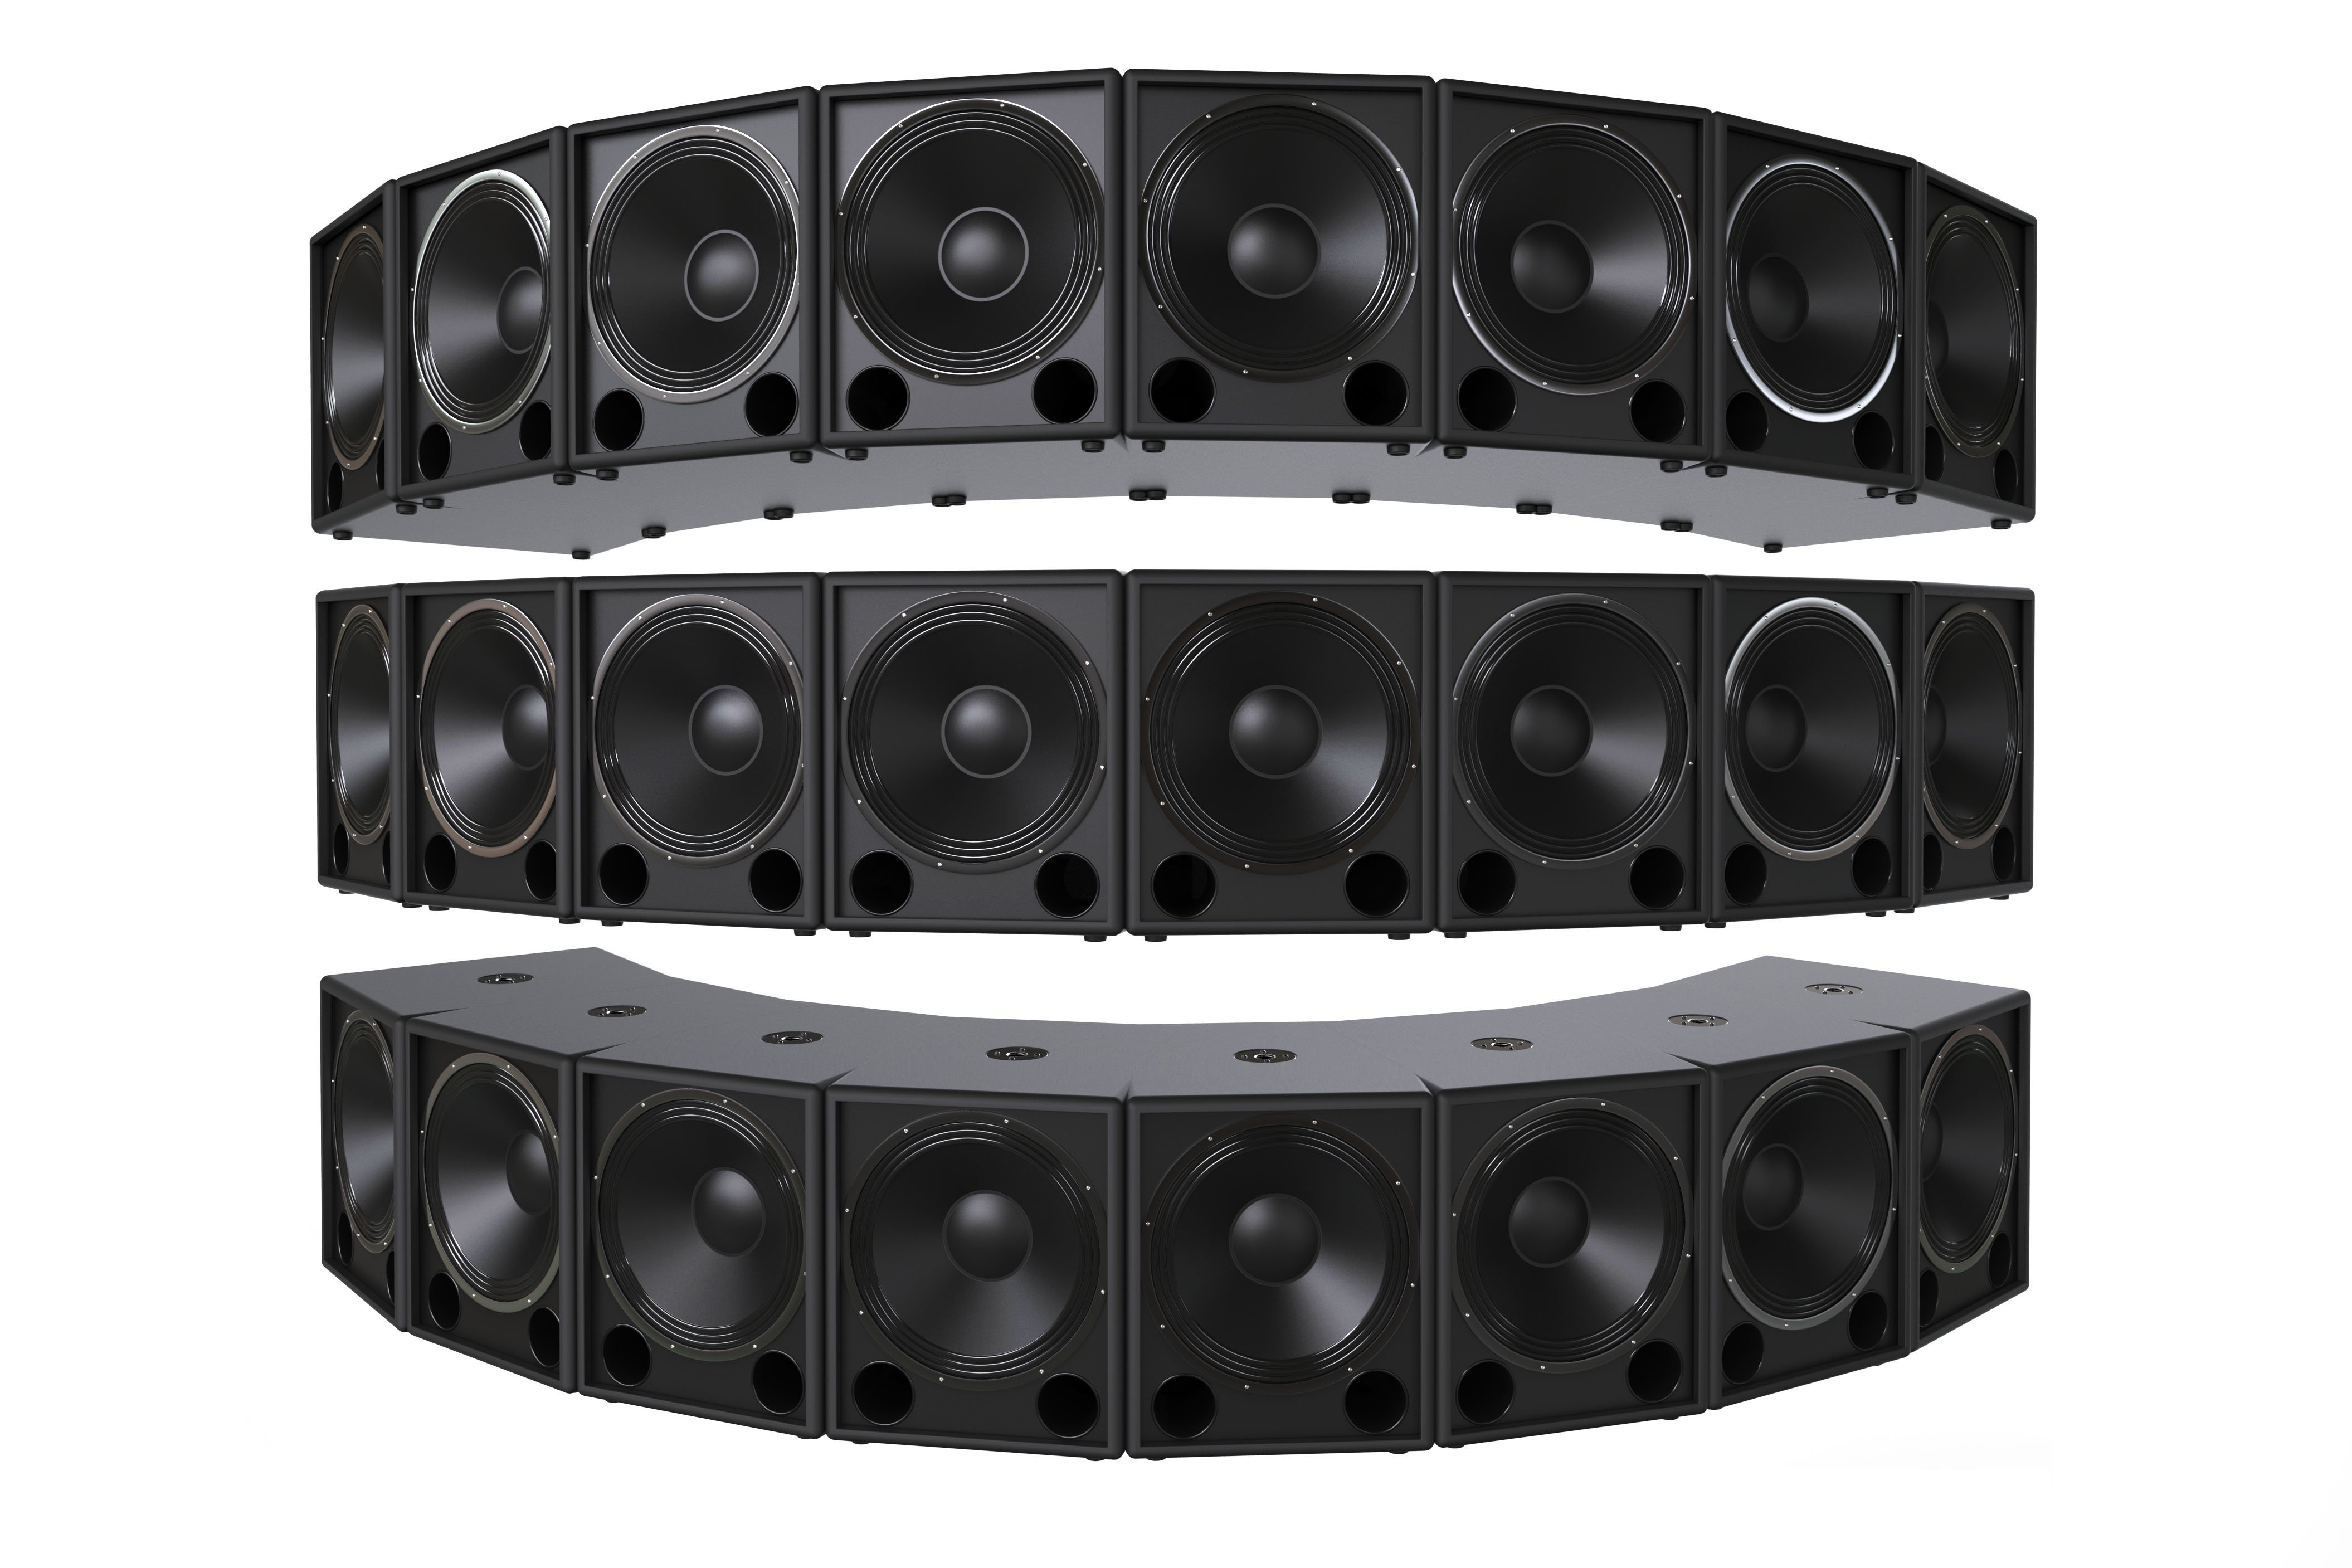 Poll: How Many Subwoofers Do You Own?